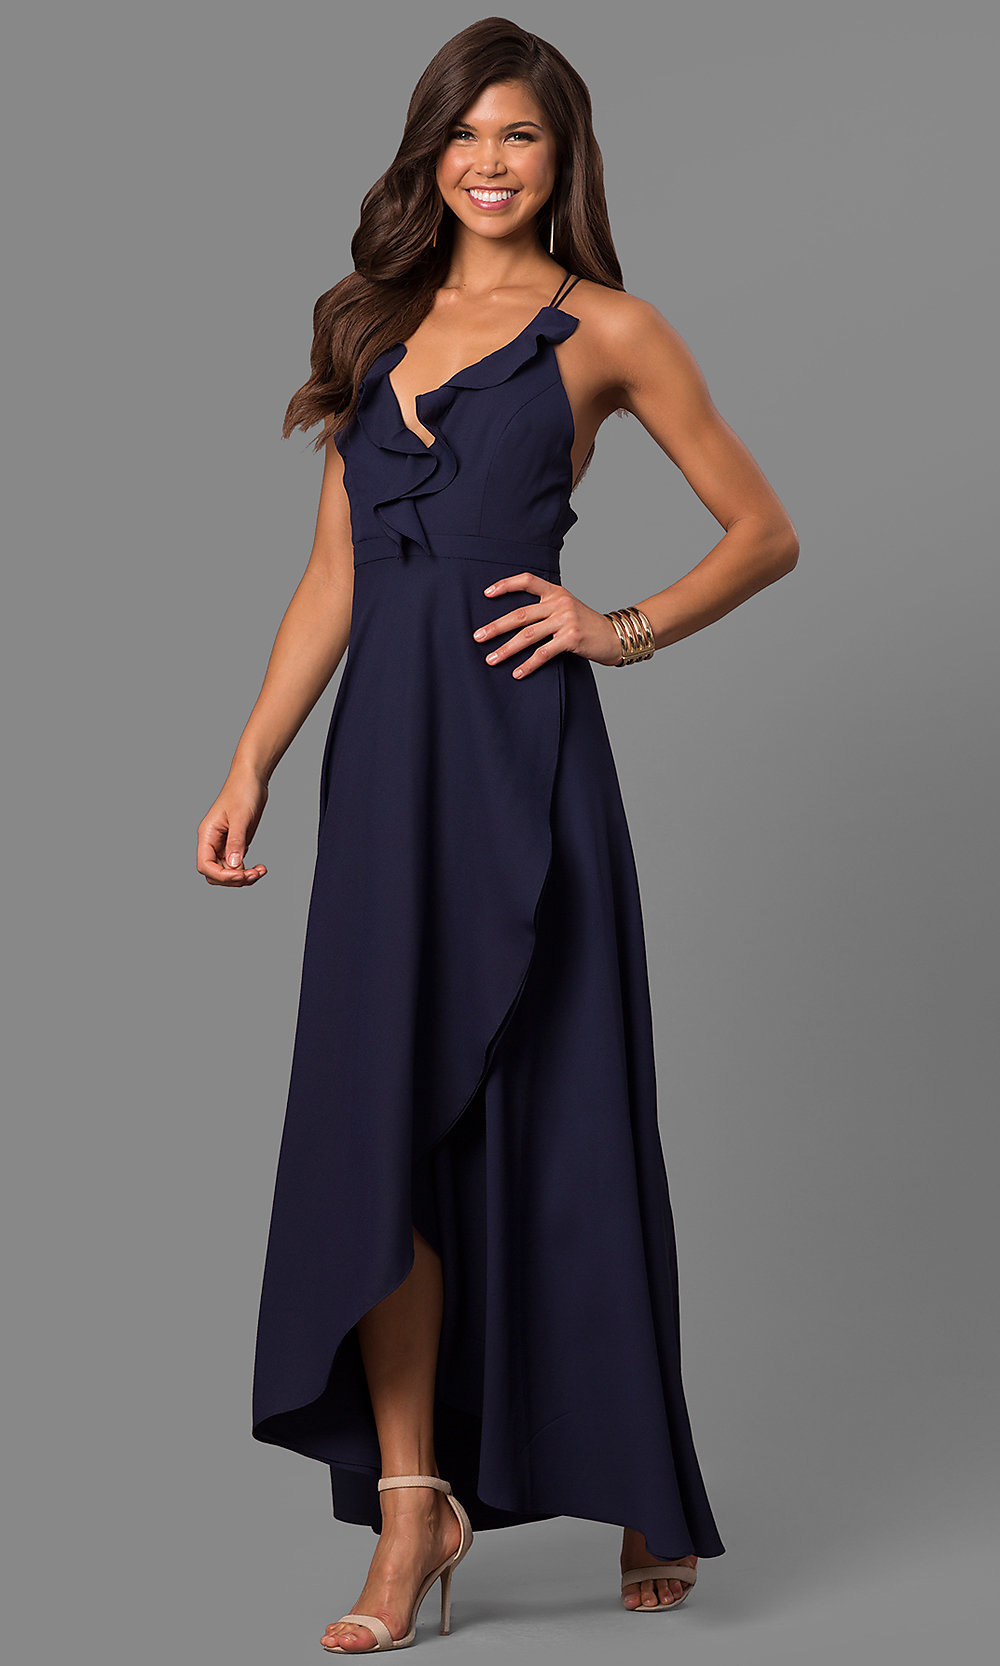 Cheap Bridesmaid Dresses, Gowns for Bridesmaids